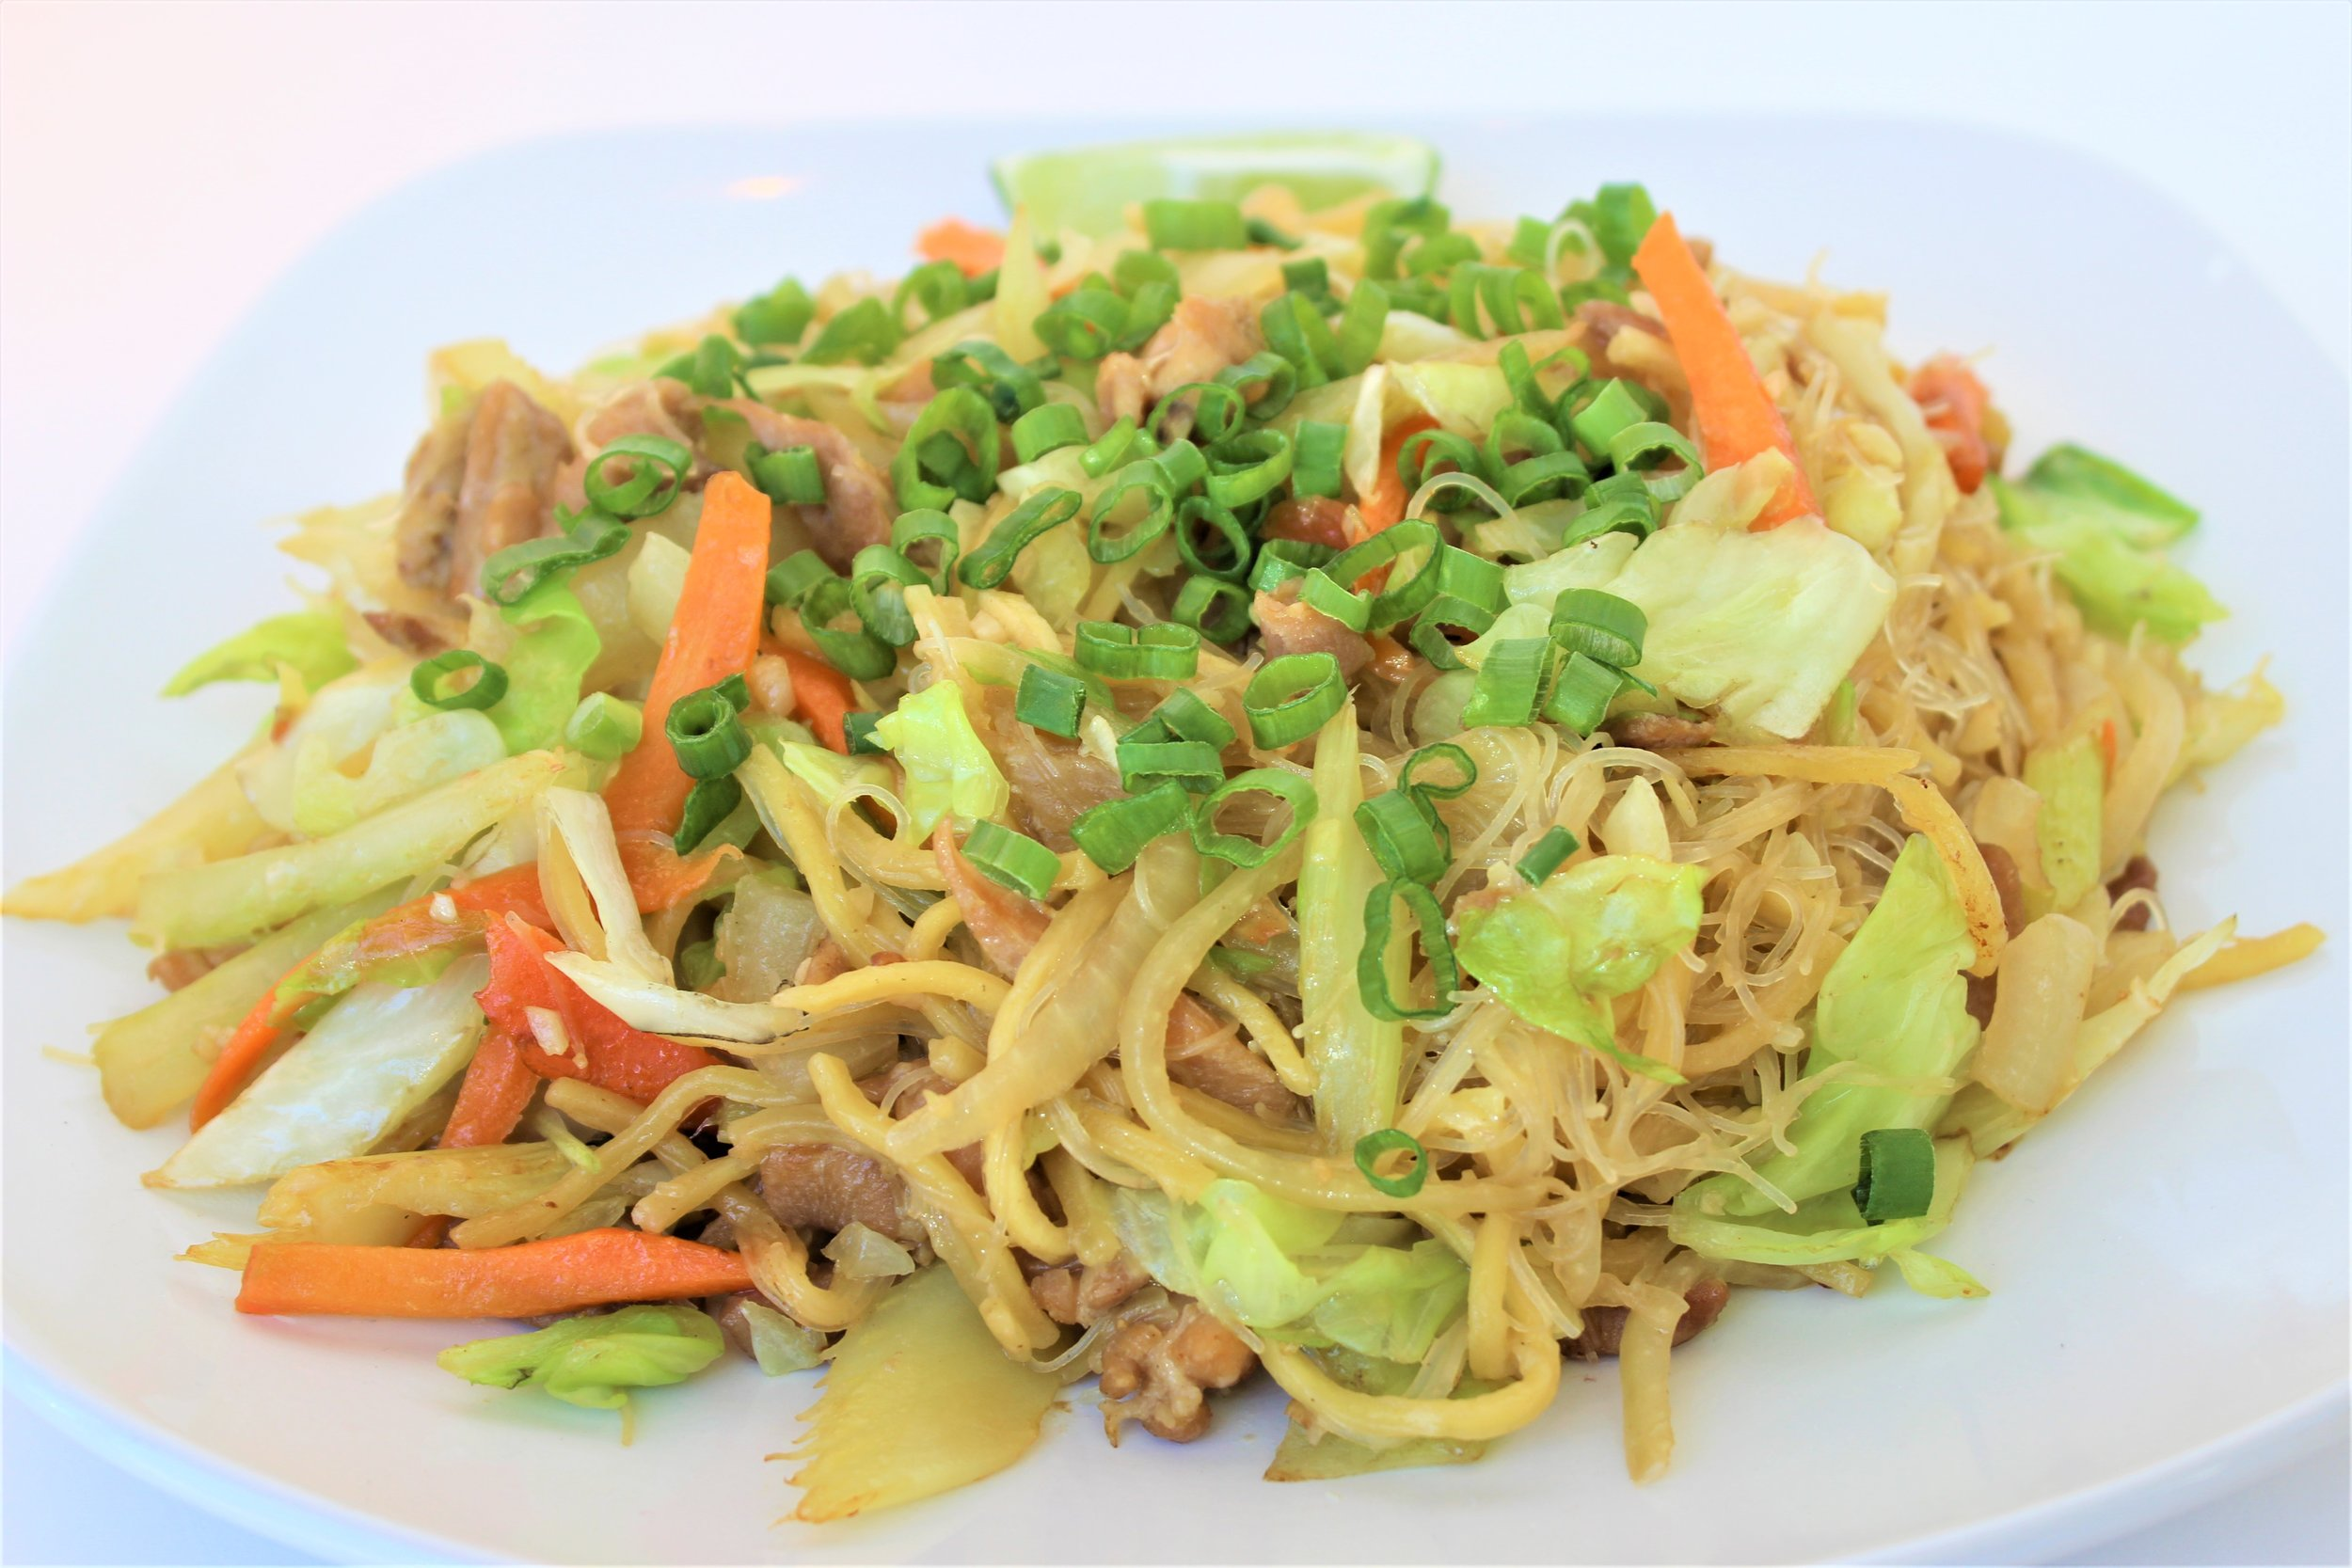 According to tradition one should not purposely cut or snap the noodles when cooking or eating.